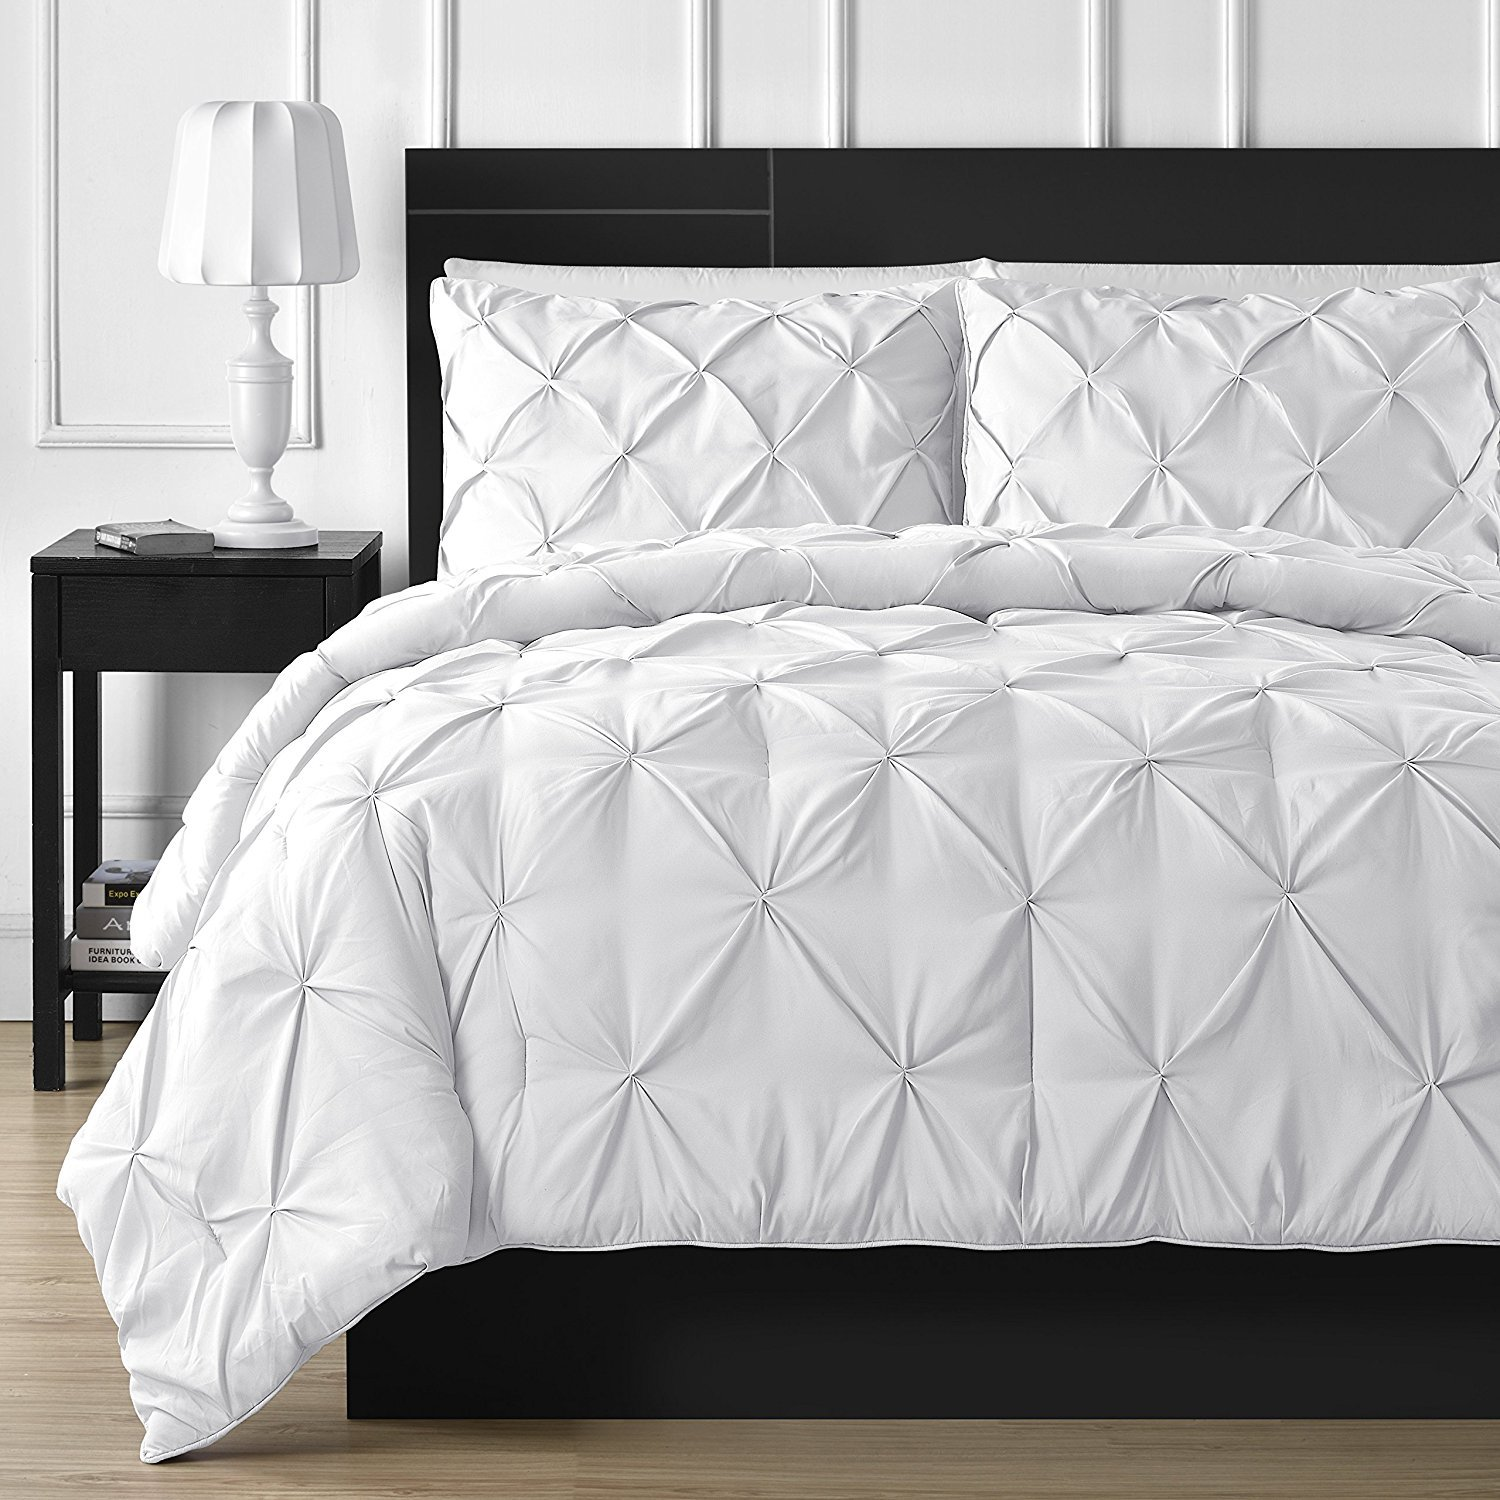 FINE LECHO Soft Luxurious 3-Piece Pinch Pleated Pintuck Decorative Quilt Duvet Cover Set Highest Quality Egyptian Cotton 800 Thread Count Comforter Cover (King/Cal-King, White